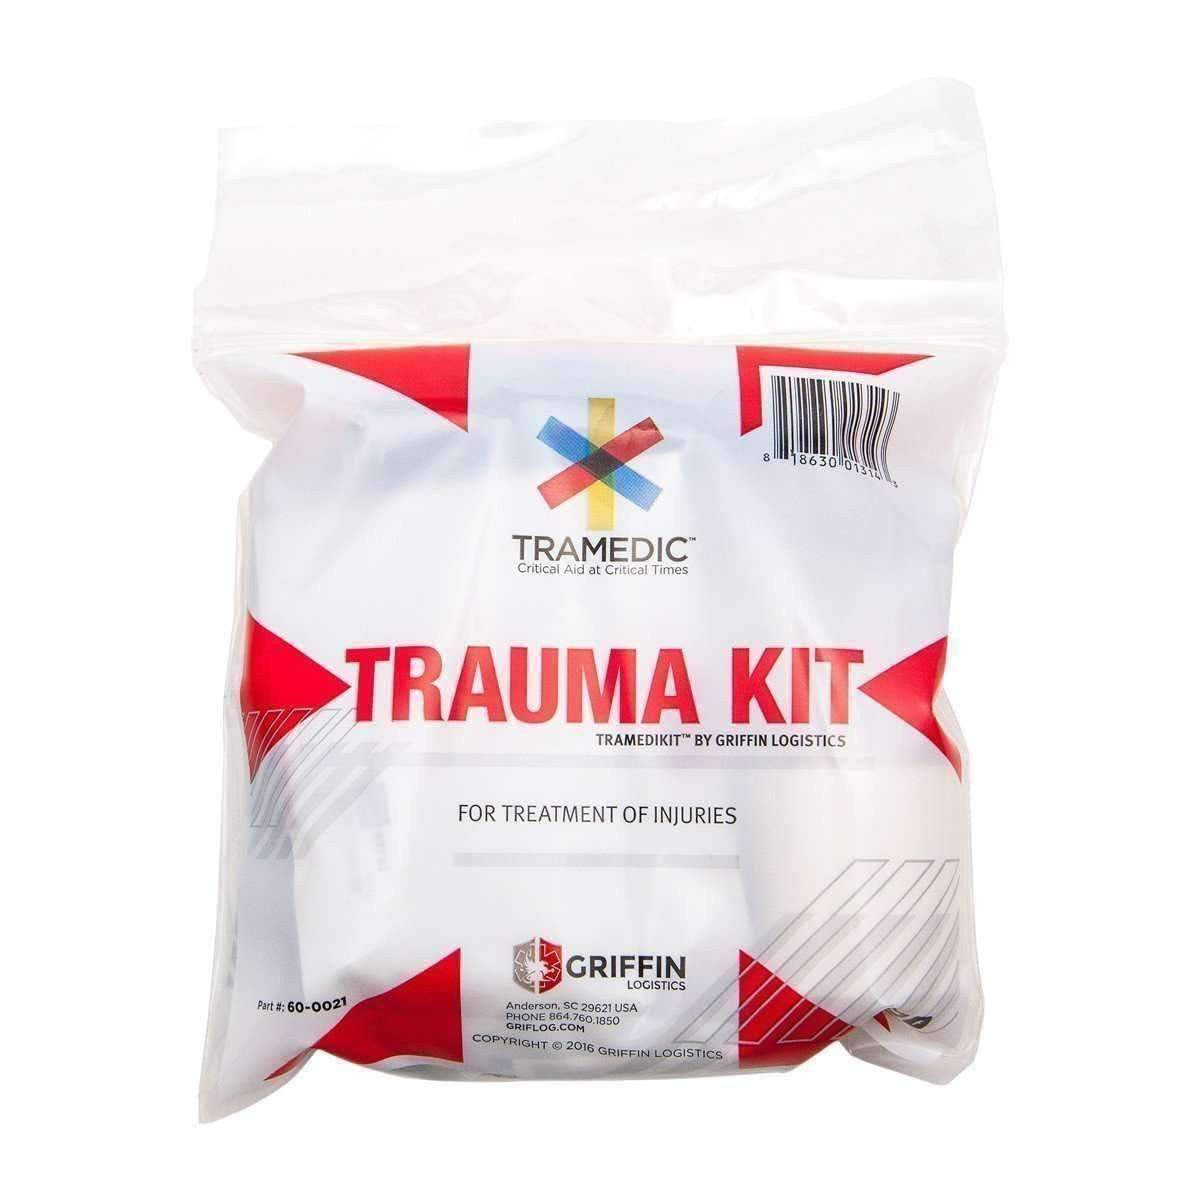 Tramedic Response,TRAMEDIKIT Basic Trauma Kit,medic-packs.